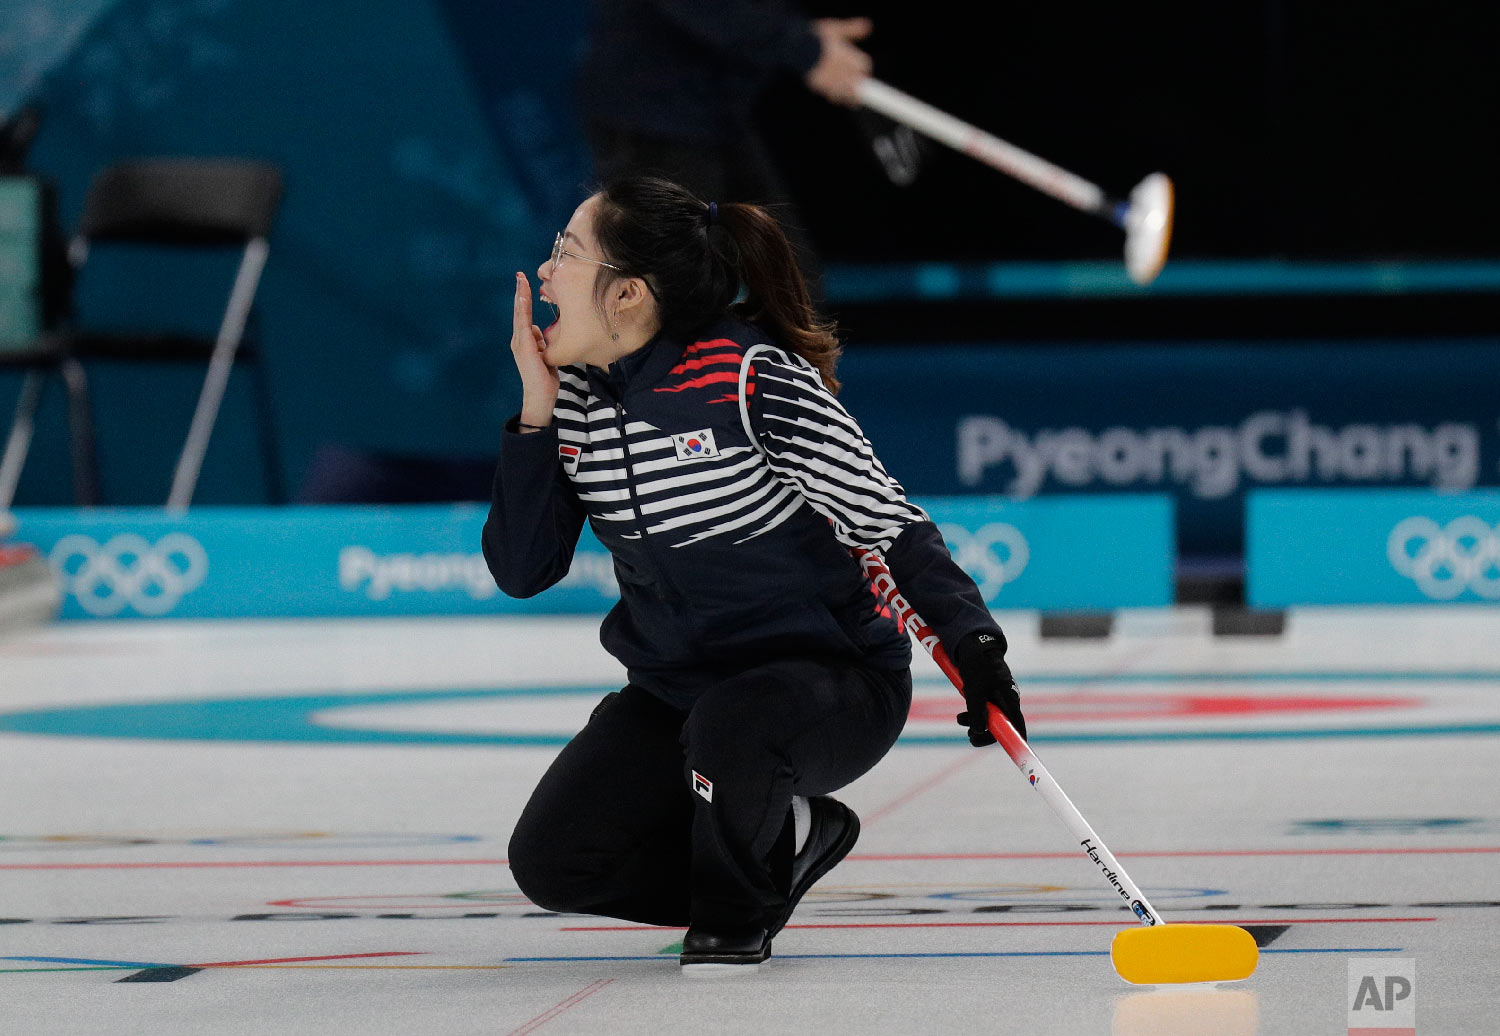 South Korea's Jang Hyeji react during the mixed doubles training session ahead of the 2018 Winter Olympics in Gangneung, South Korea, Wednesday, Feb. 7, 2018. (AP Photo/Aaron Favila)